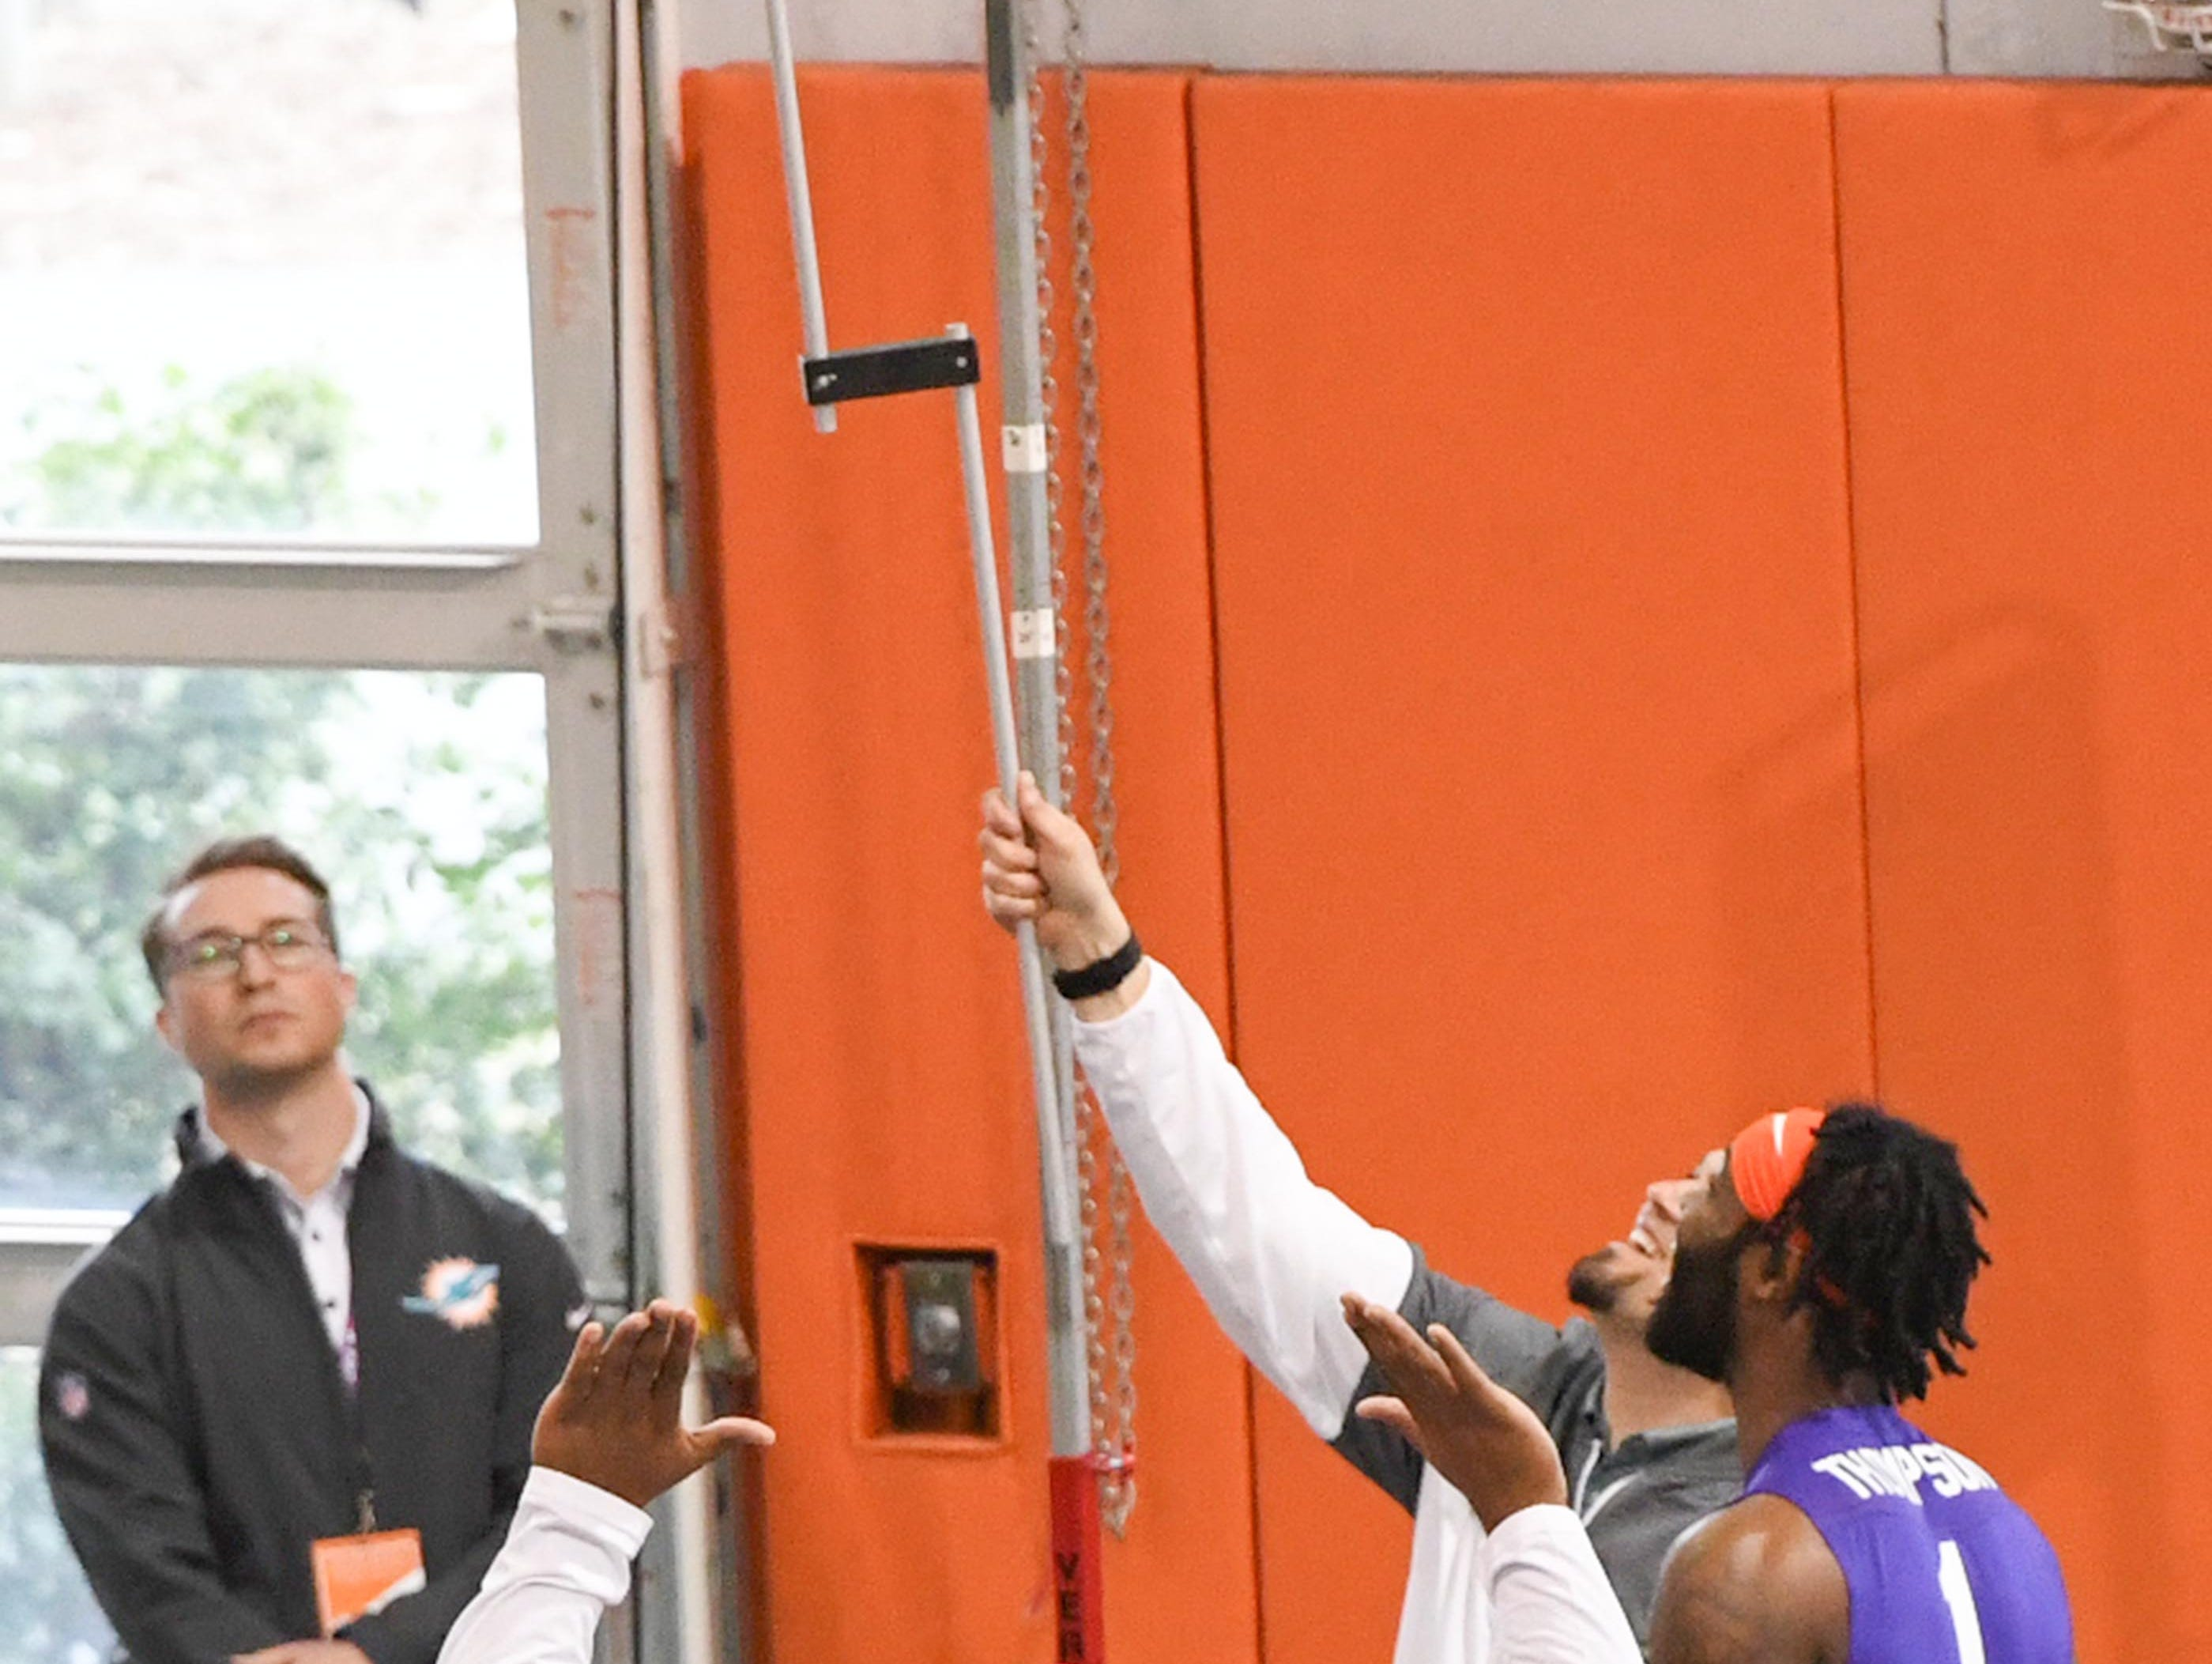 Wide receiver Trevion Thompson vertical leap of 36 inches during Clemson pro day at the Poe Indoor Facility in Clemson Thursday, March 14, 2019.